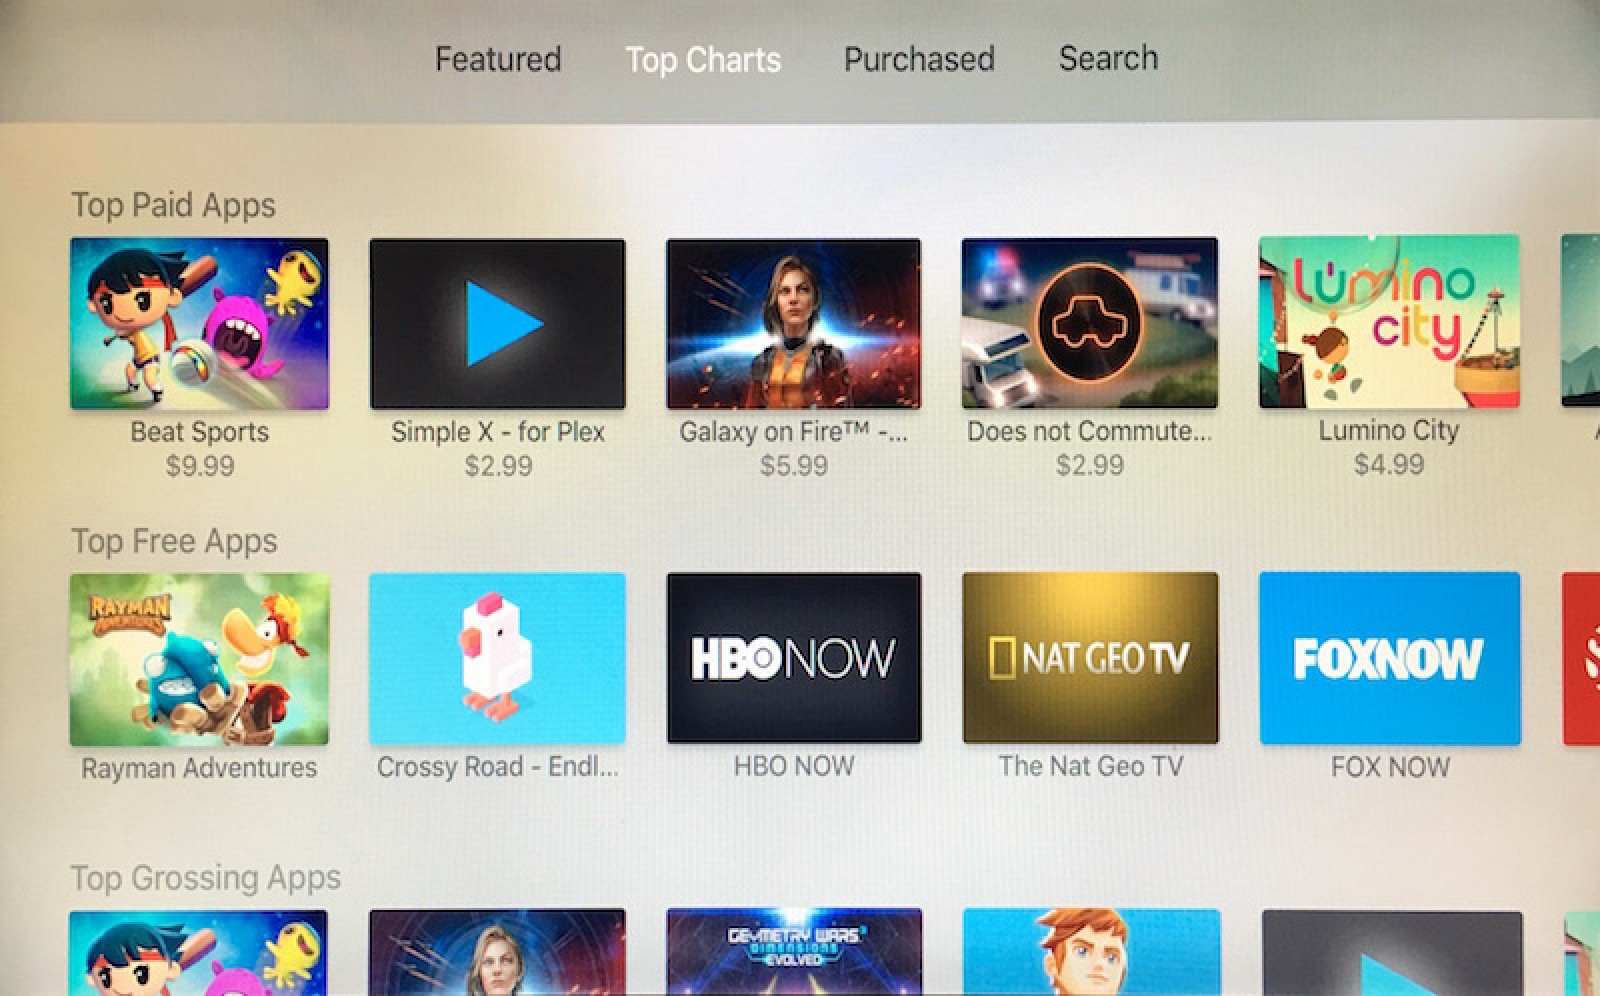 Nye Apple Tv-gevinster Charts For Top Betalt, Free And Grossing-1868